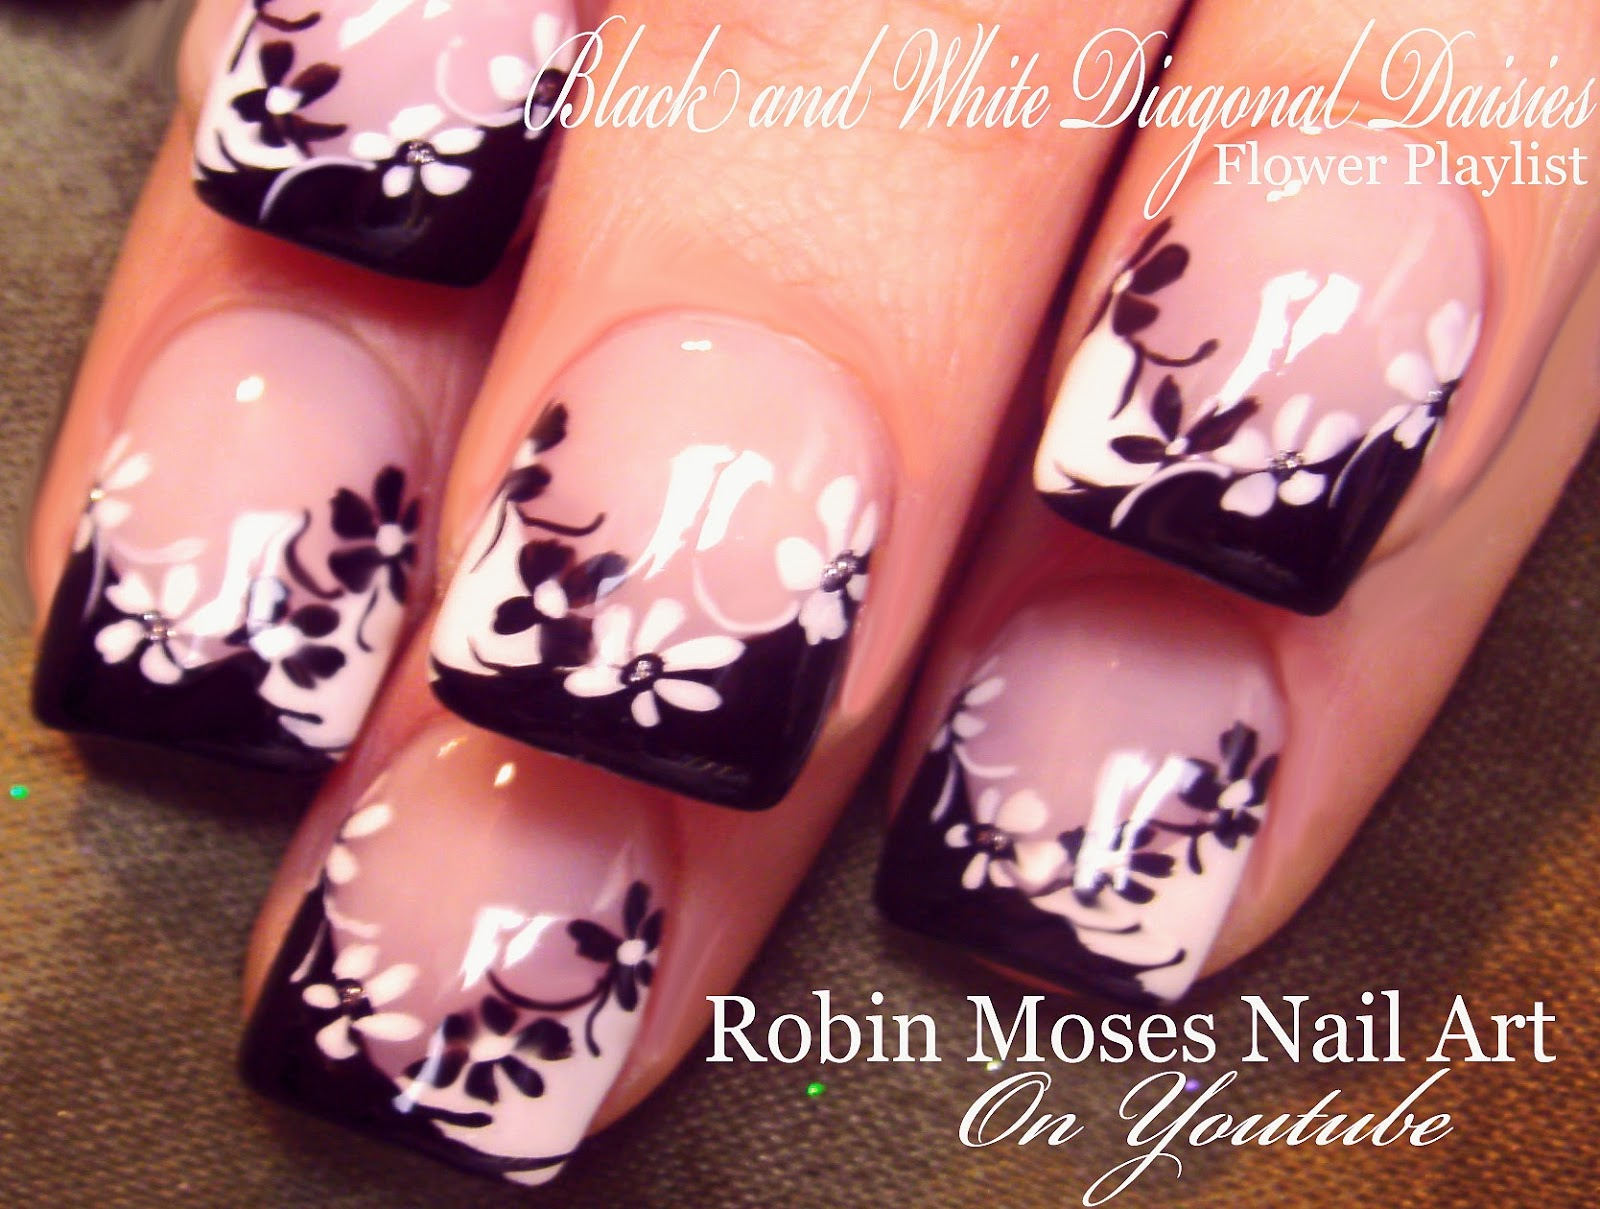 Robin moses nail art black and white daisies on a diagonal black and white nails daisy nails flower nails diagonal french french tips black and white flowers black and white flower prinsesfo Image collections